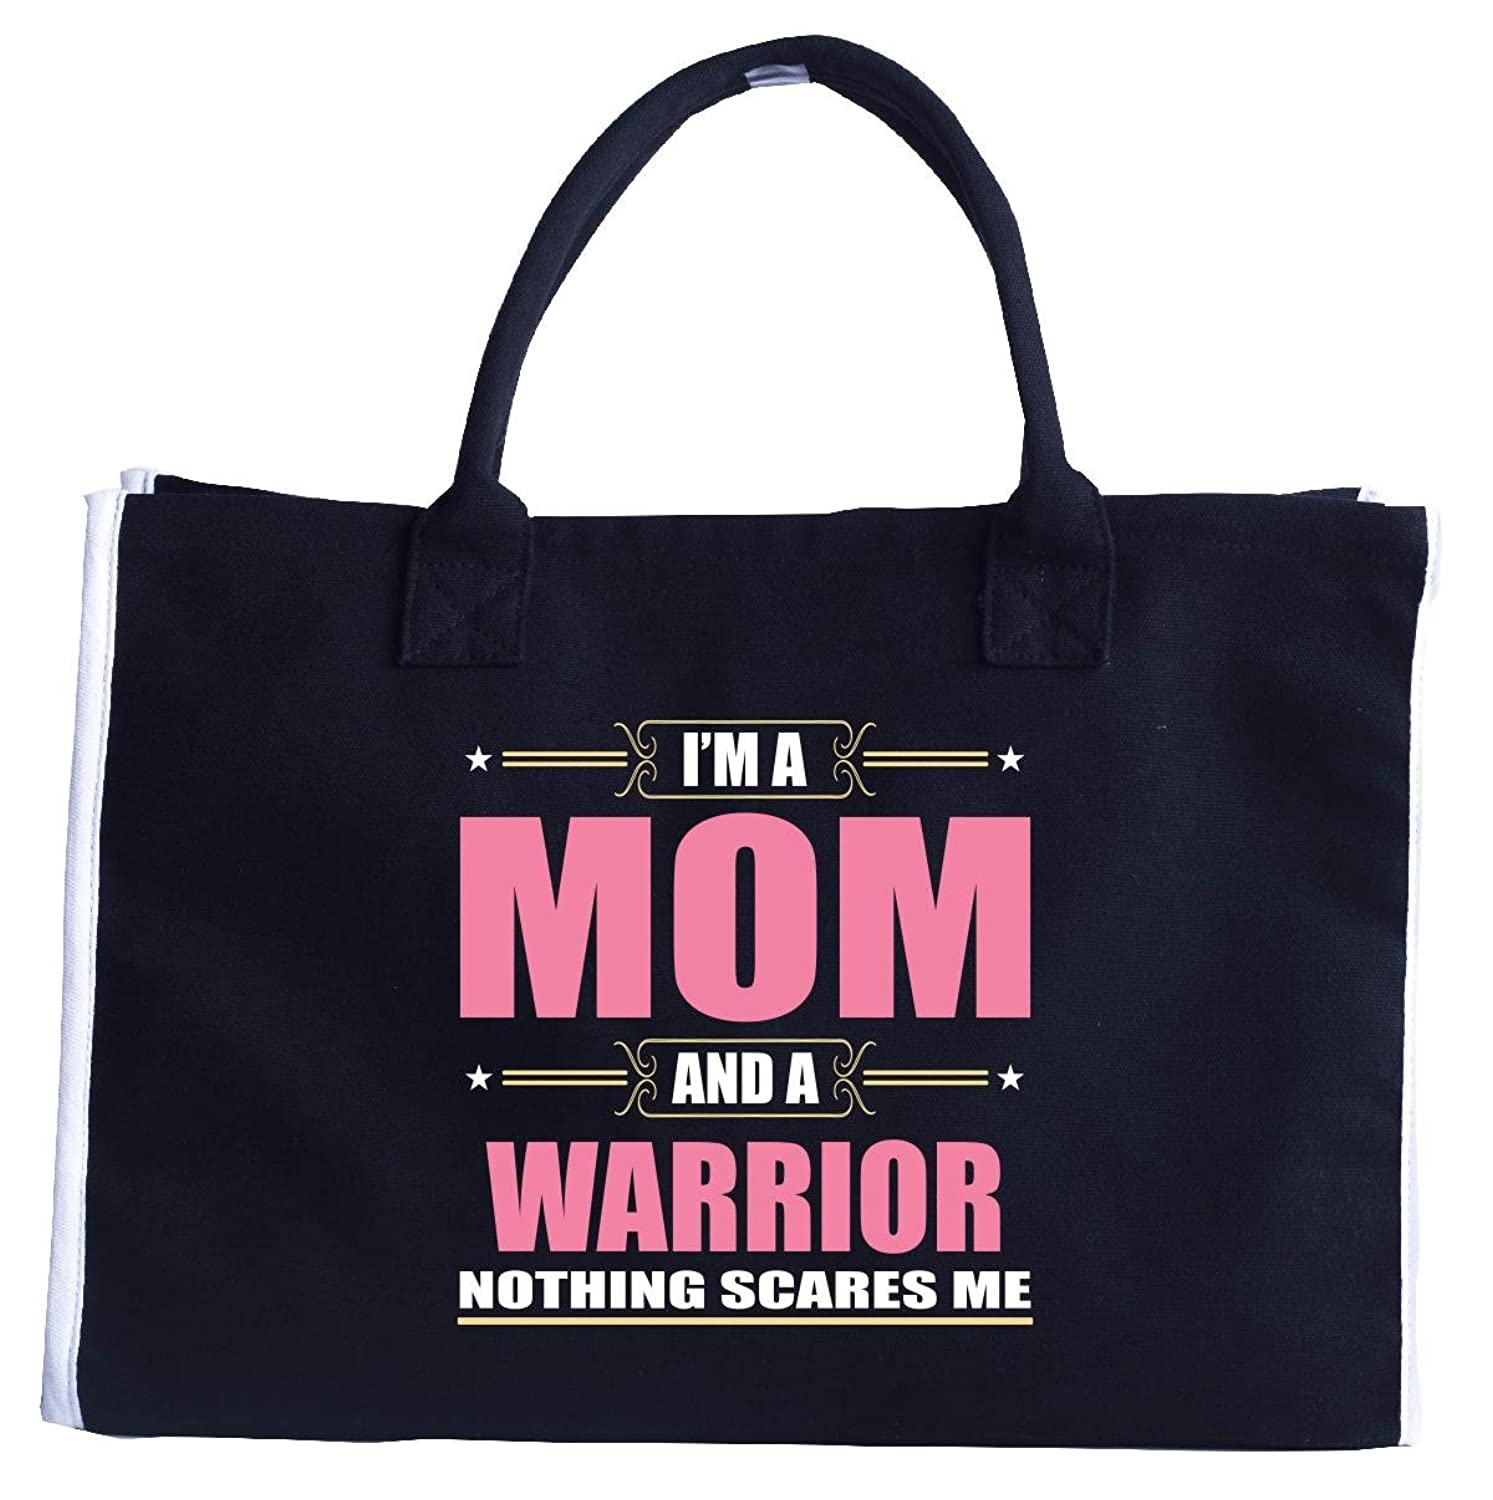 I'm A Mom And A Warrior Nothing Scares Me - Fashion Tote Bag